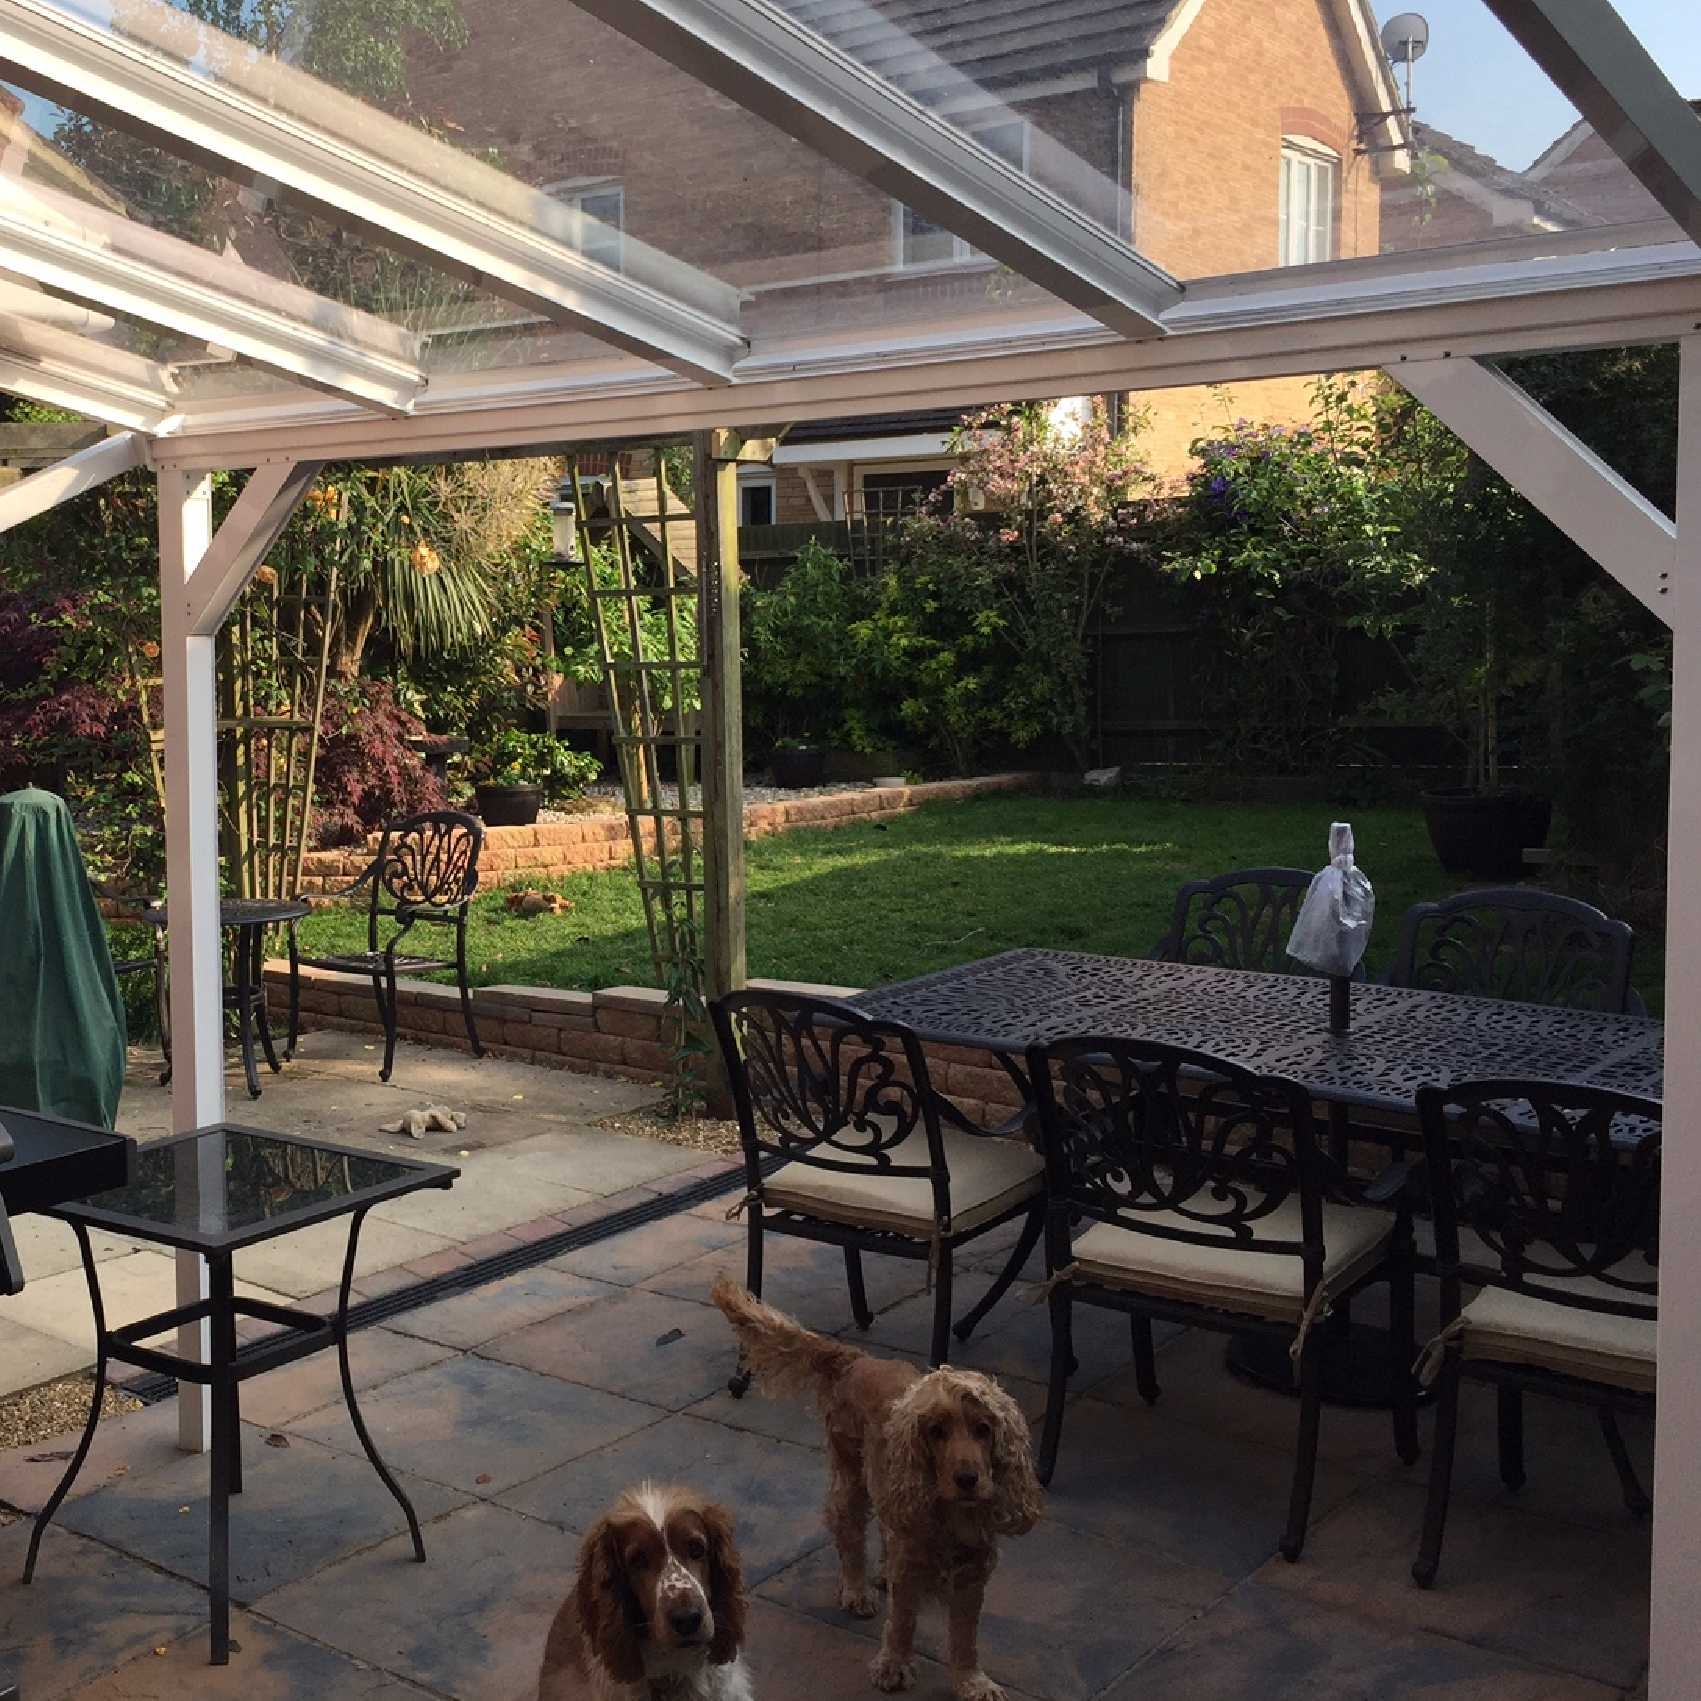 Affordable Omega Smart White Lean-To Canopy with 6mm Glass Clear Plate Polycarbonate Glazing - 4.9m (W) x 1.5m (P), (3) Supporting Posts